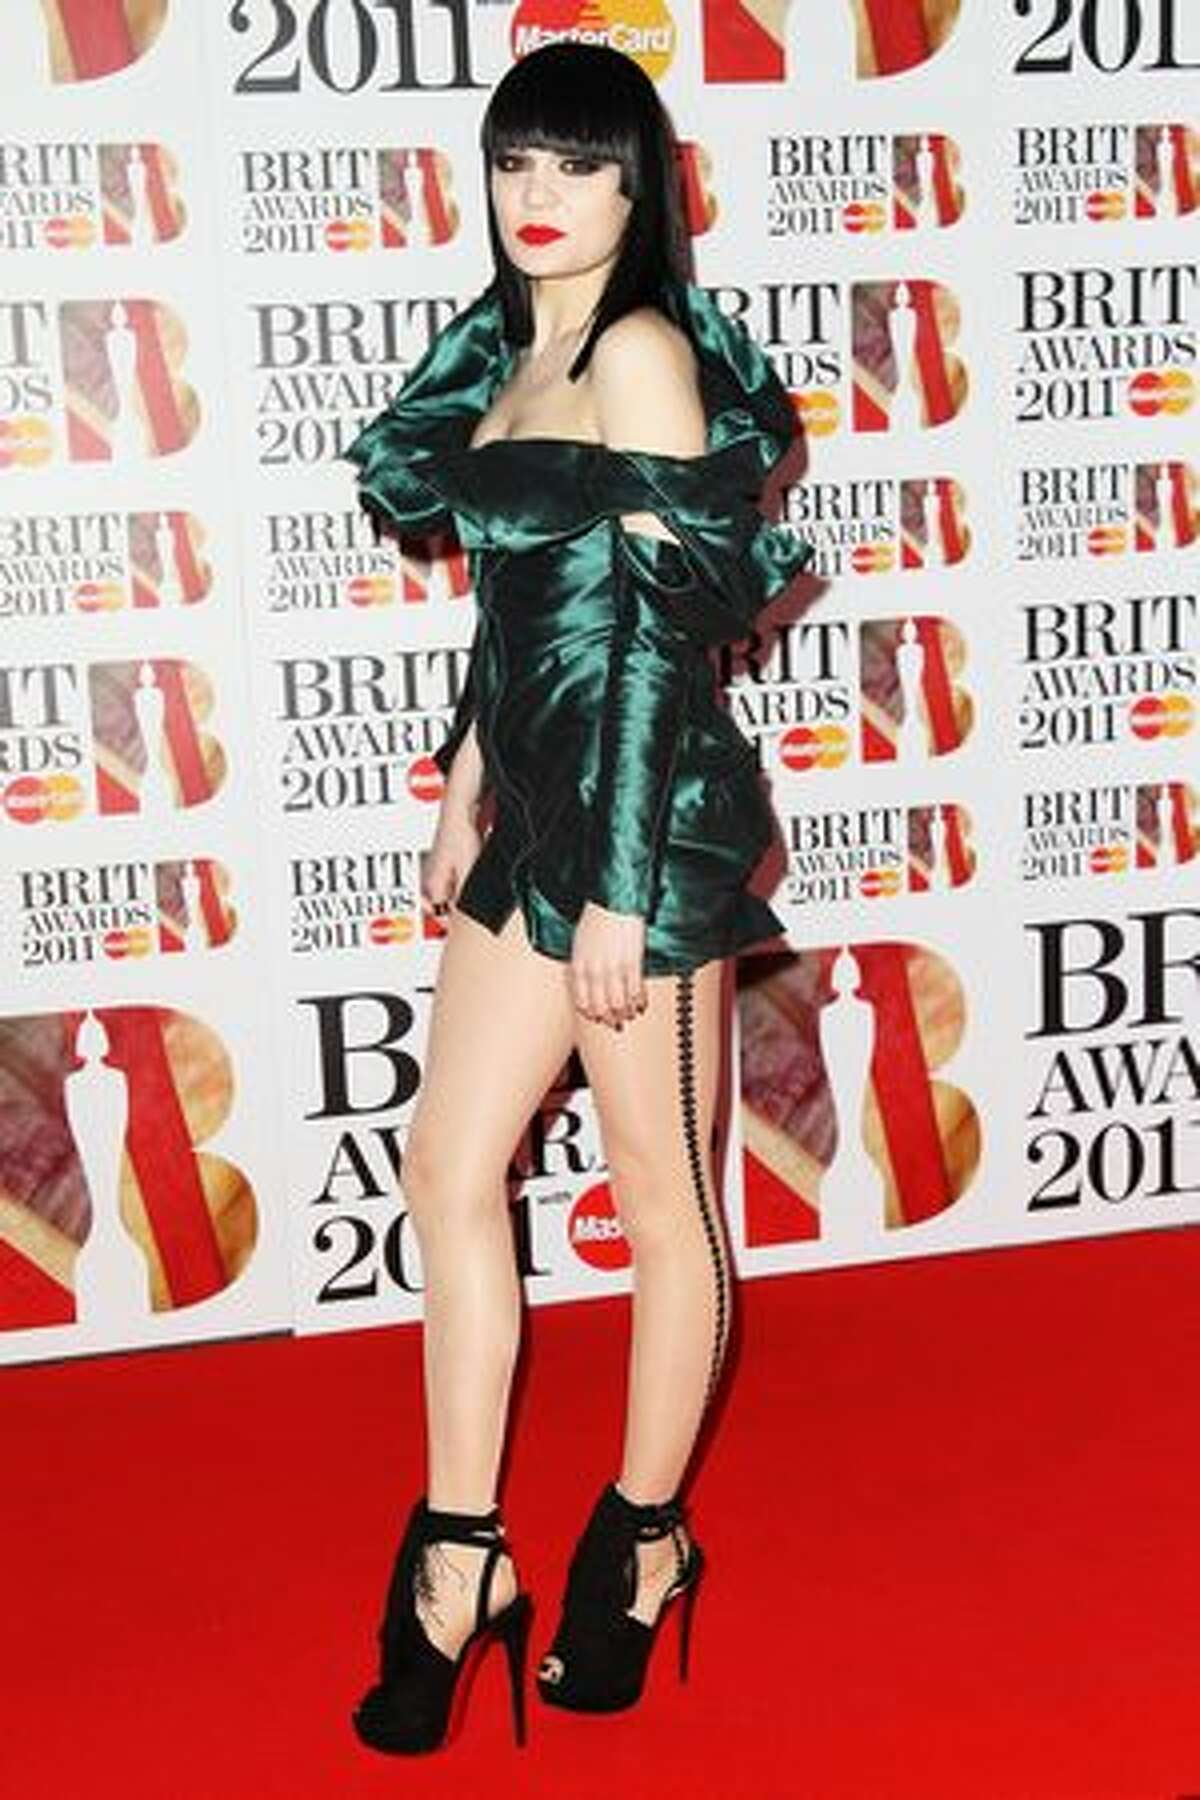 Jessie J attends The Brit Awards 2011 held at The O2 Arena in London, England.